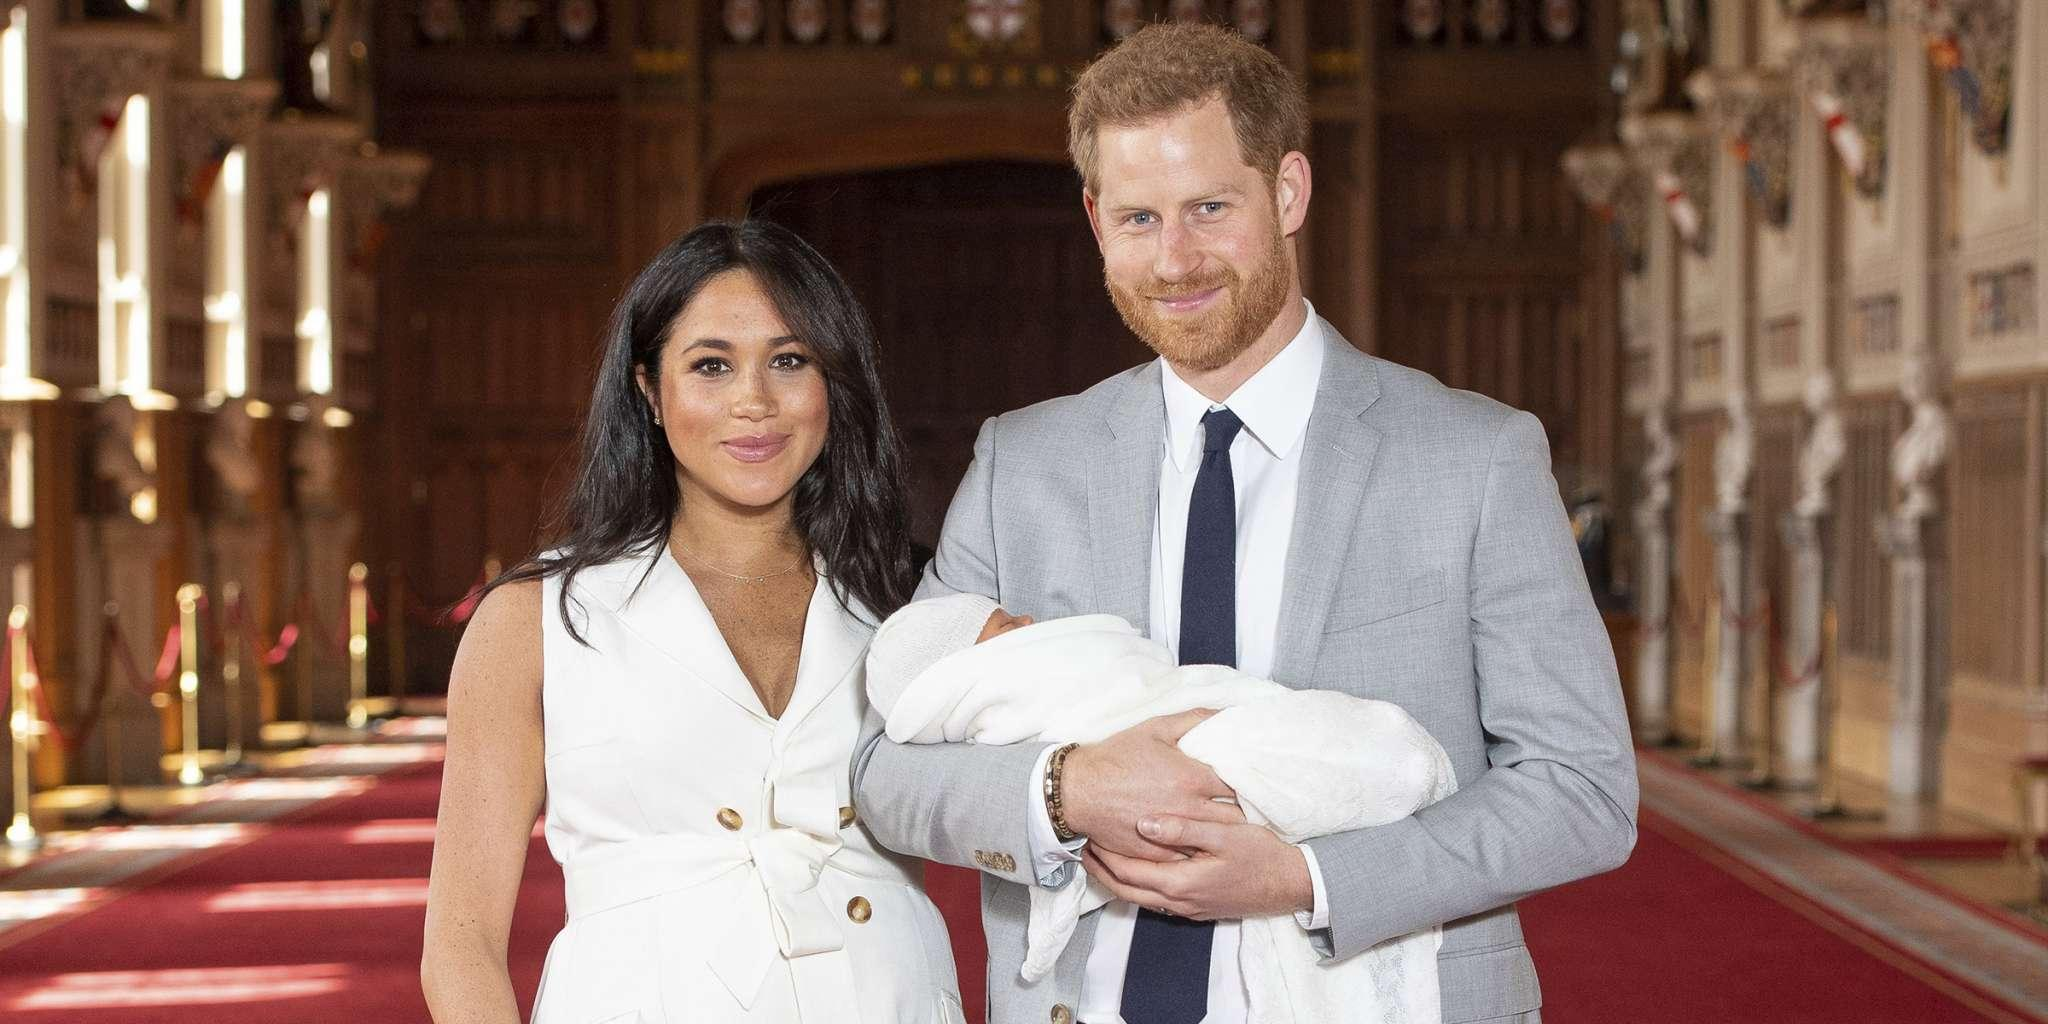 Prince Harry And Meghan Markle's Baby Boy Archie Harrison: All About The Meaning Of His Name!